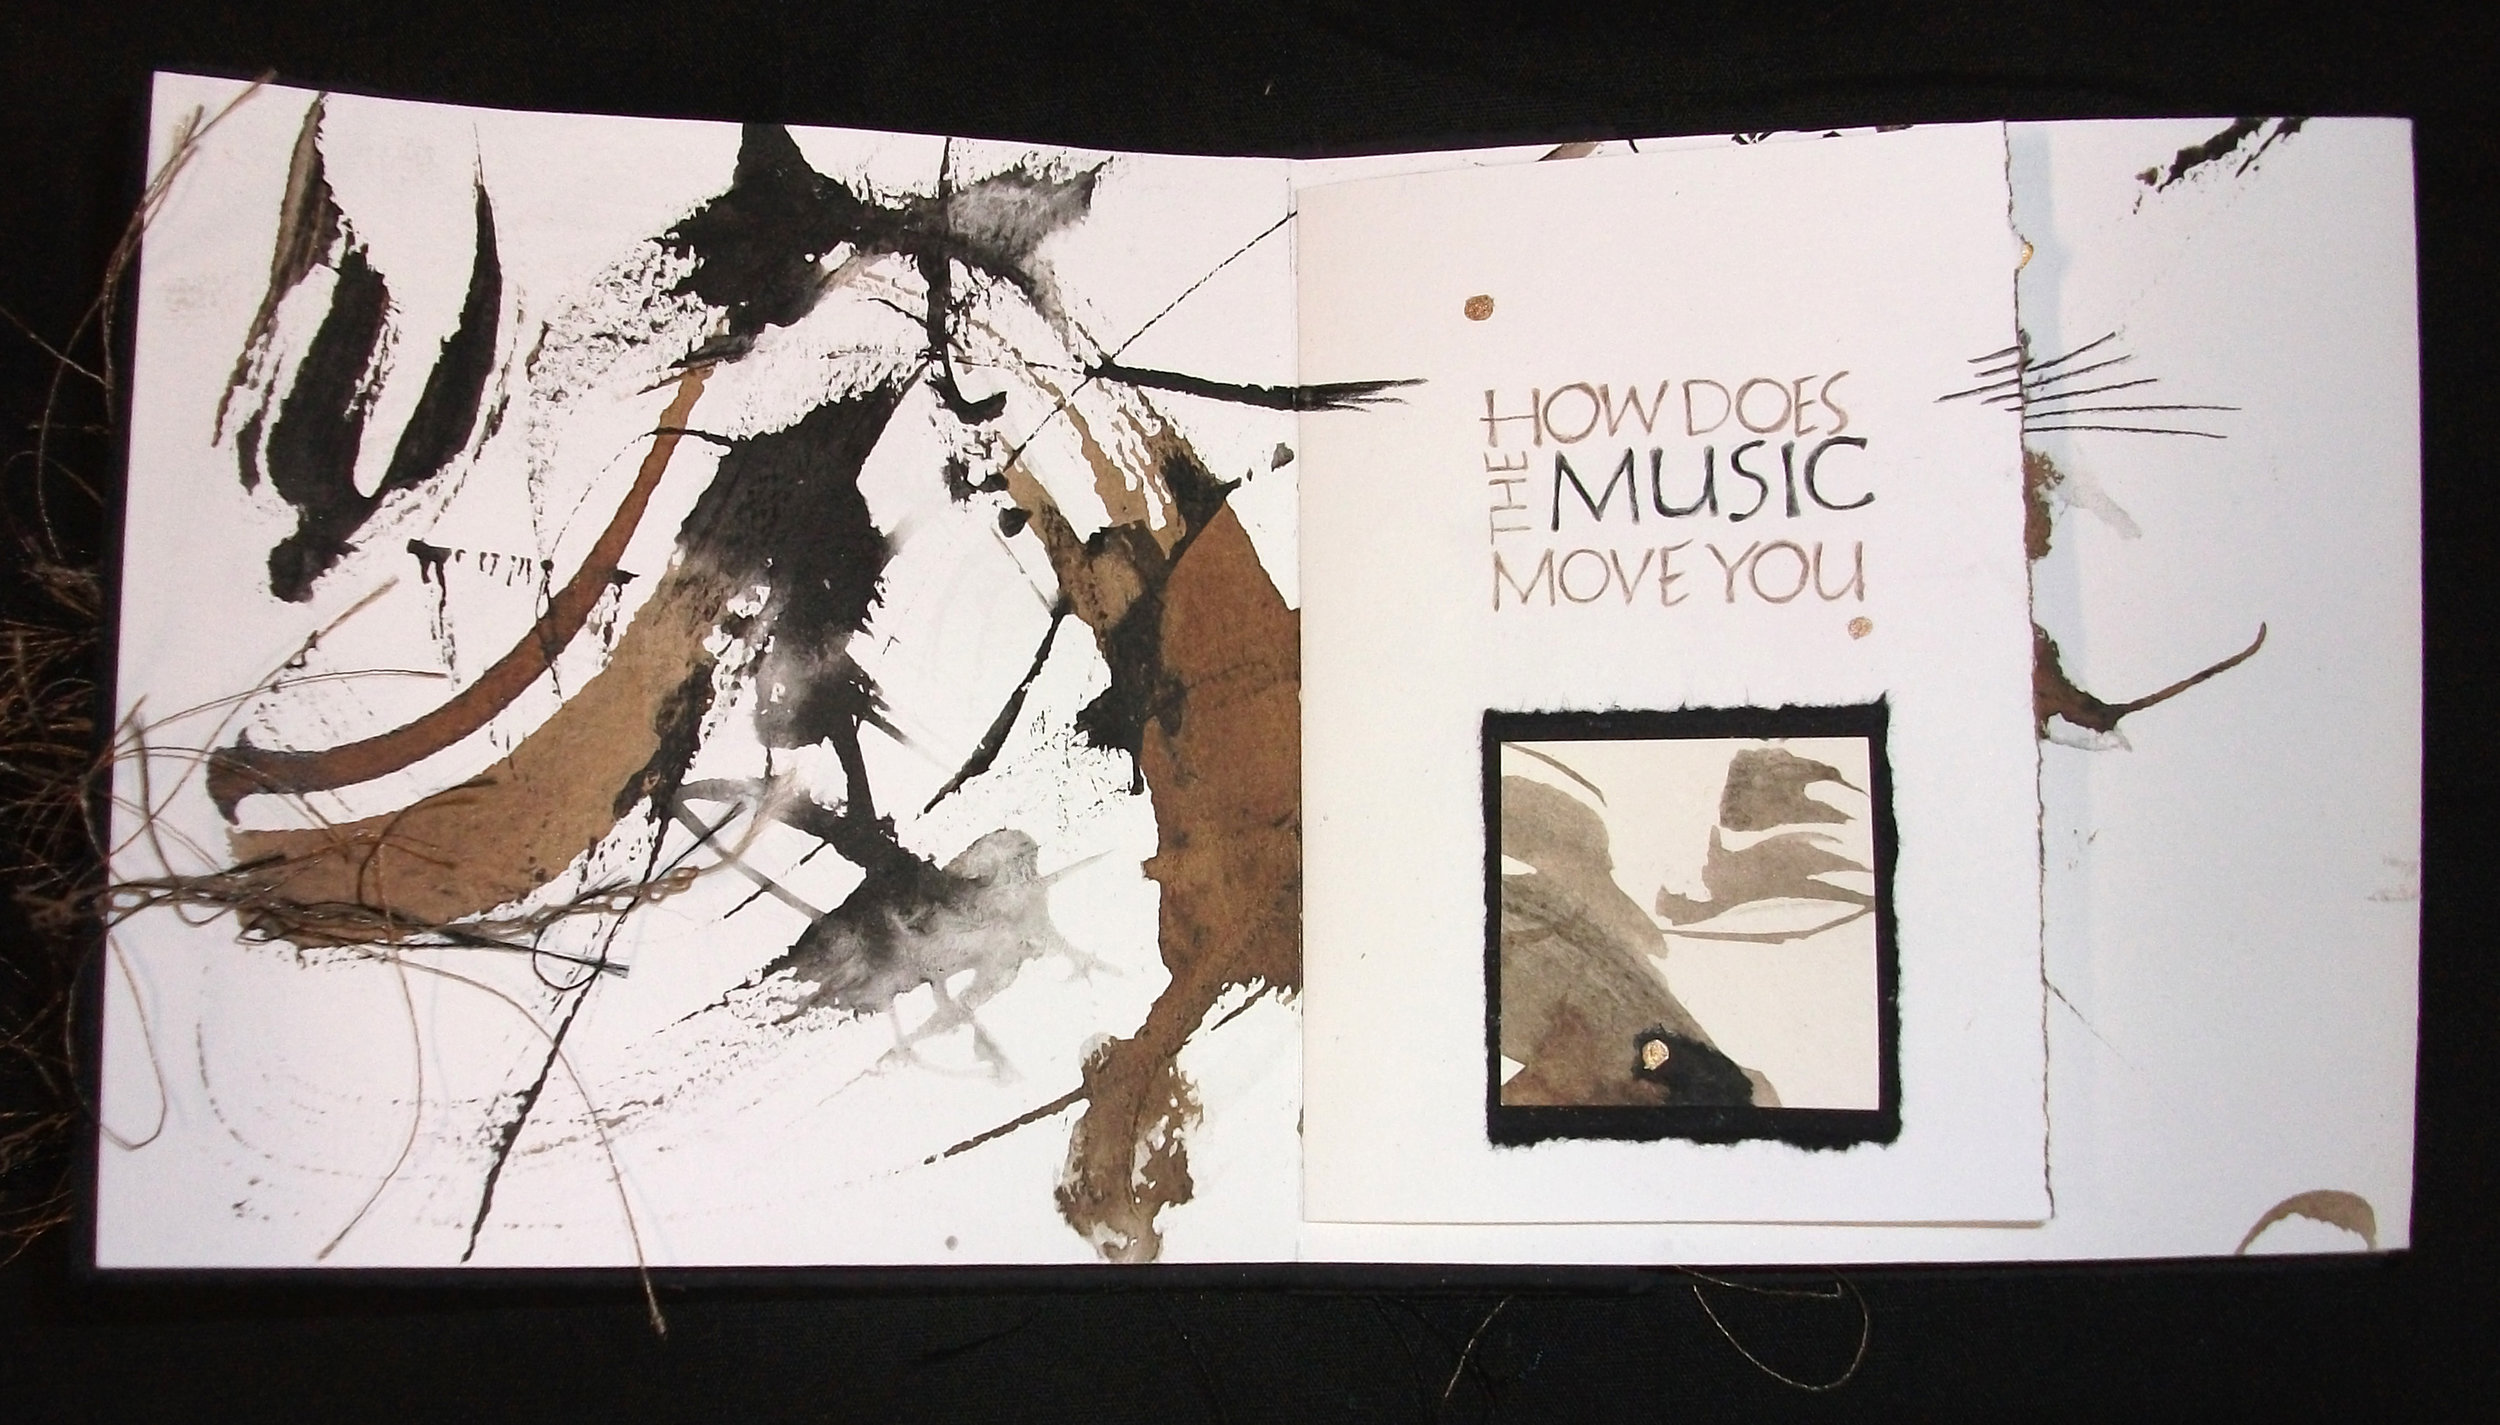 Julie Kechele,  How Does the Music Move You,  Mixed--Sumit and Walnut Ink, Pencil, 2011, Plainwell,MI